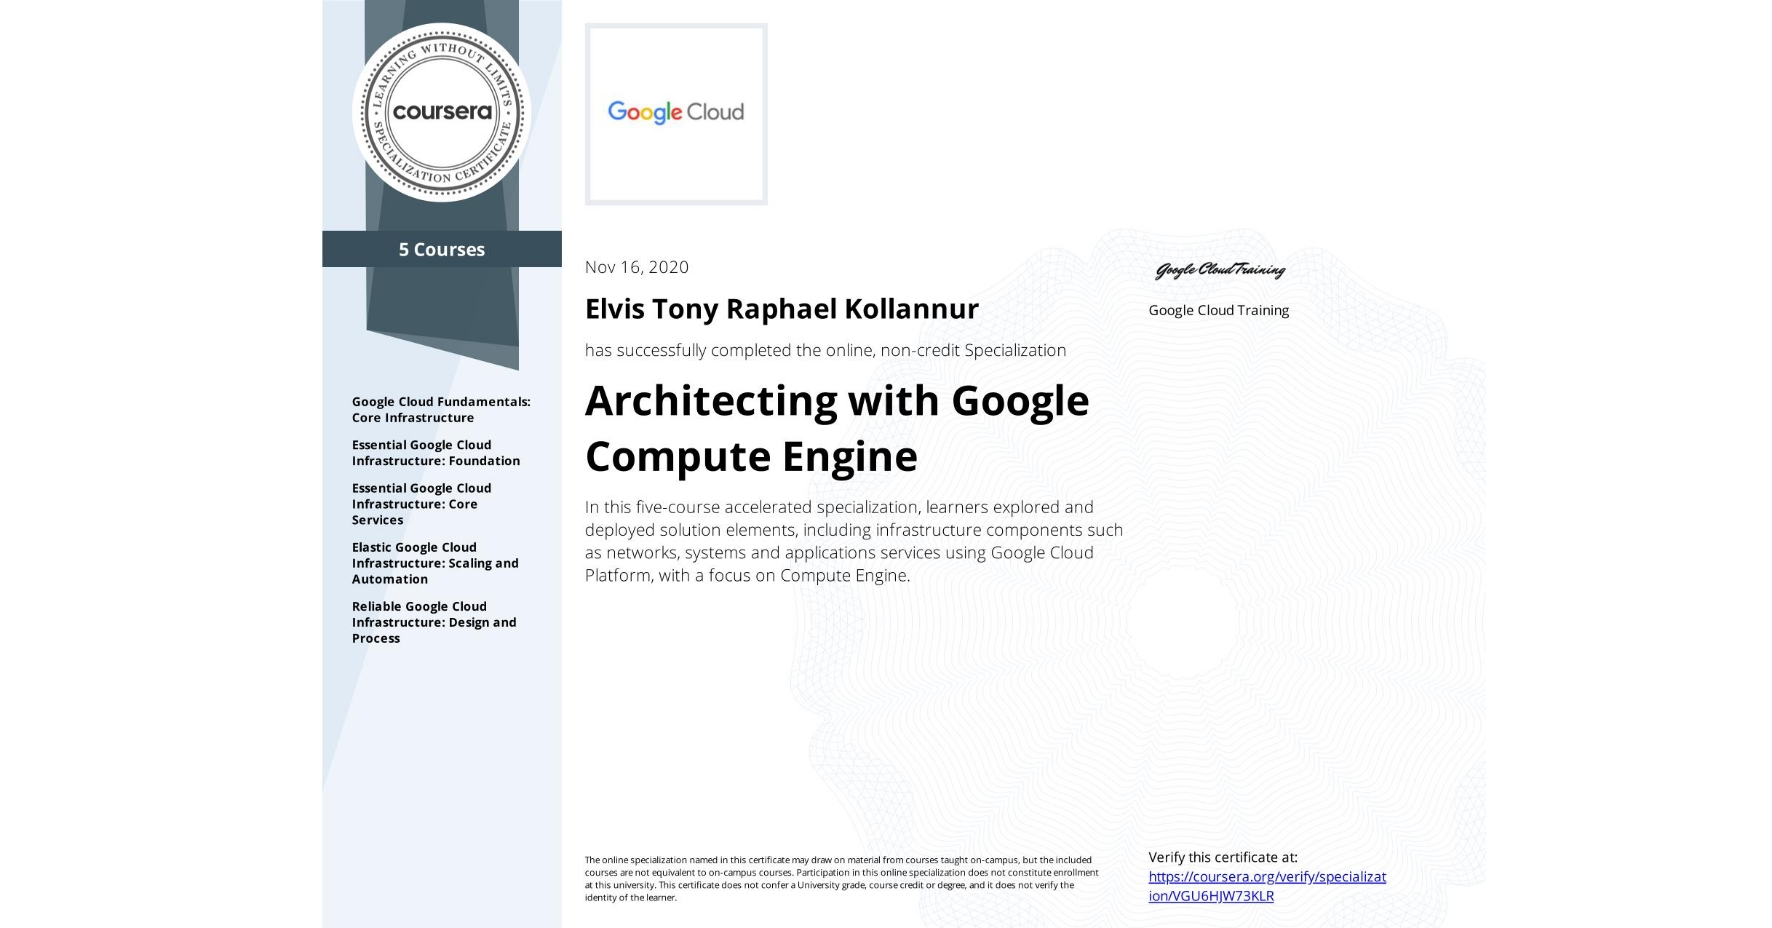 View certificate for Elvis Tony Raphael Kollannur, Architecting with Google Compute Engine, offered through Coursera. In this five-course accelerated specialization, learners explored and deployed solution elements, including infrastructure components such as networks, systems and applications services using Google Cloud Platform, with a focus on Compute Engine.